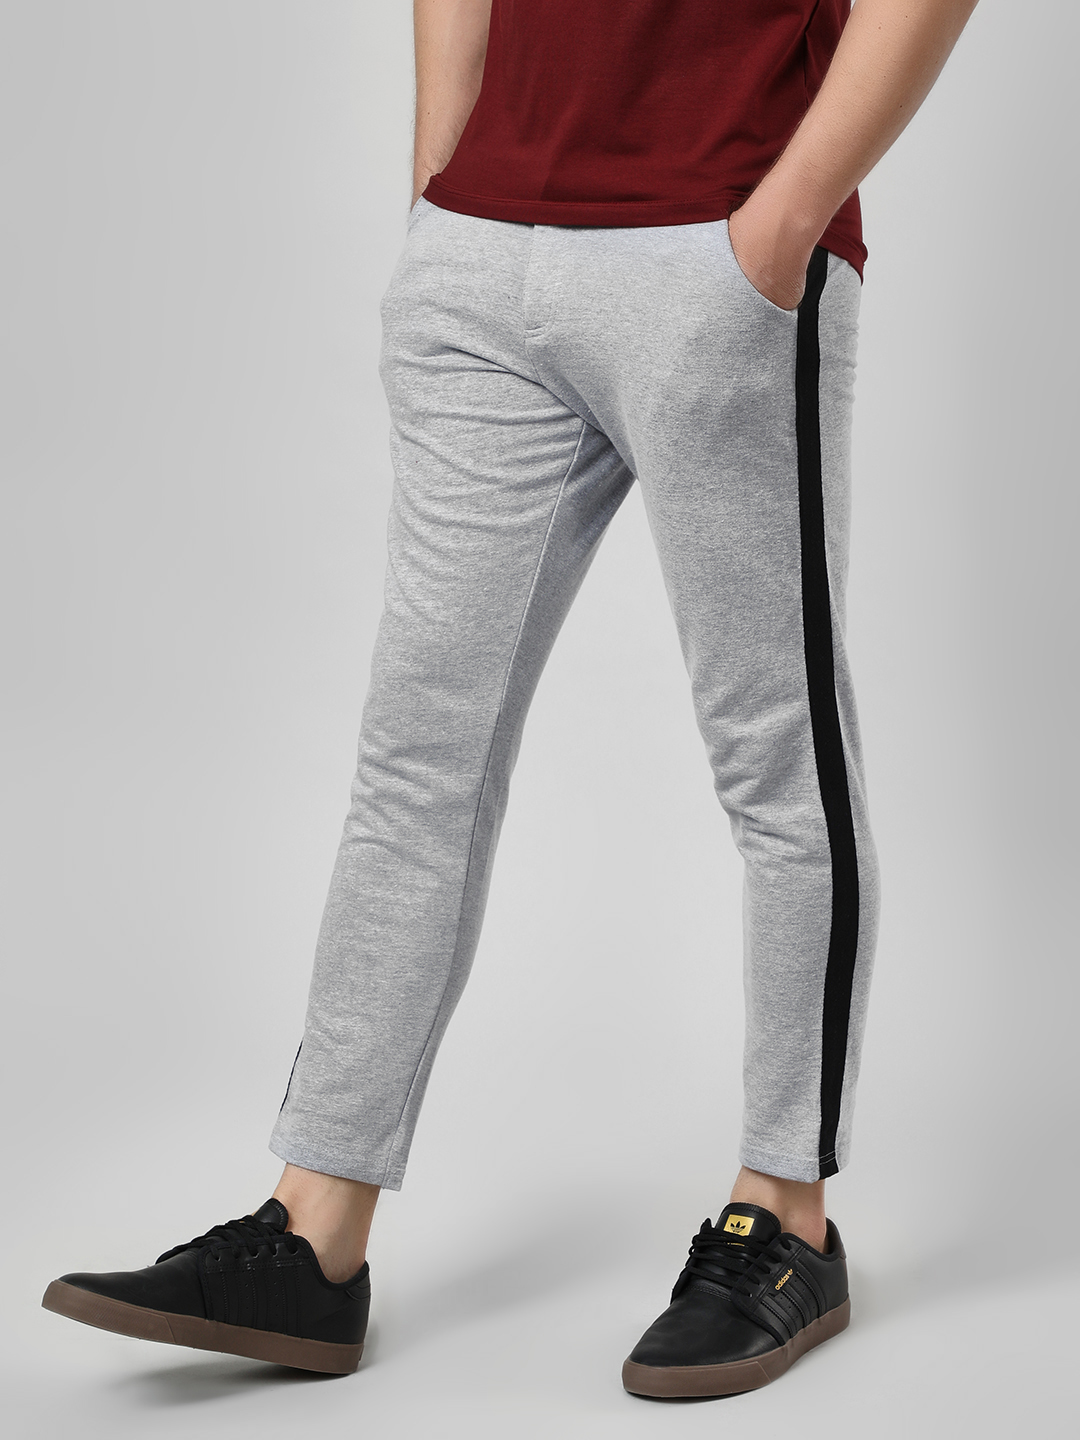 Garcon Grey Contrast Side Tape Knitted Trousers 1